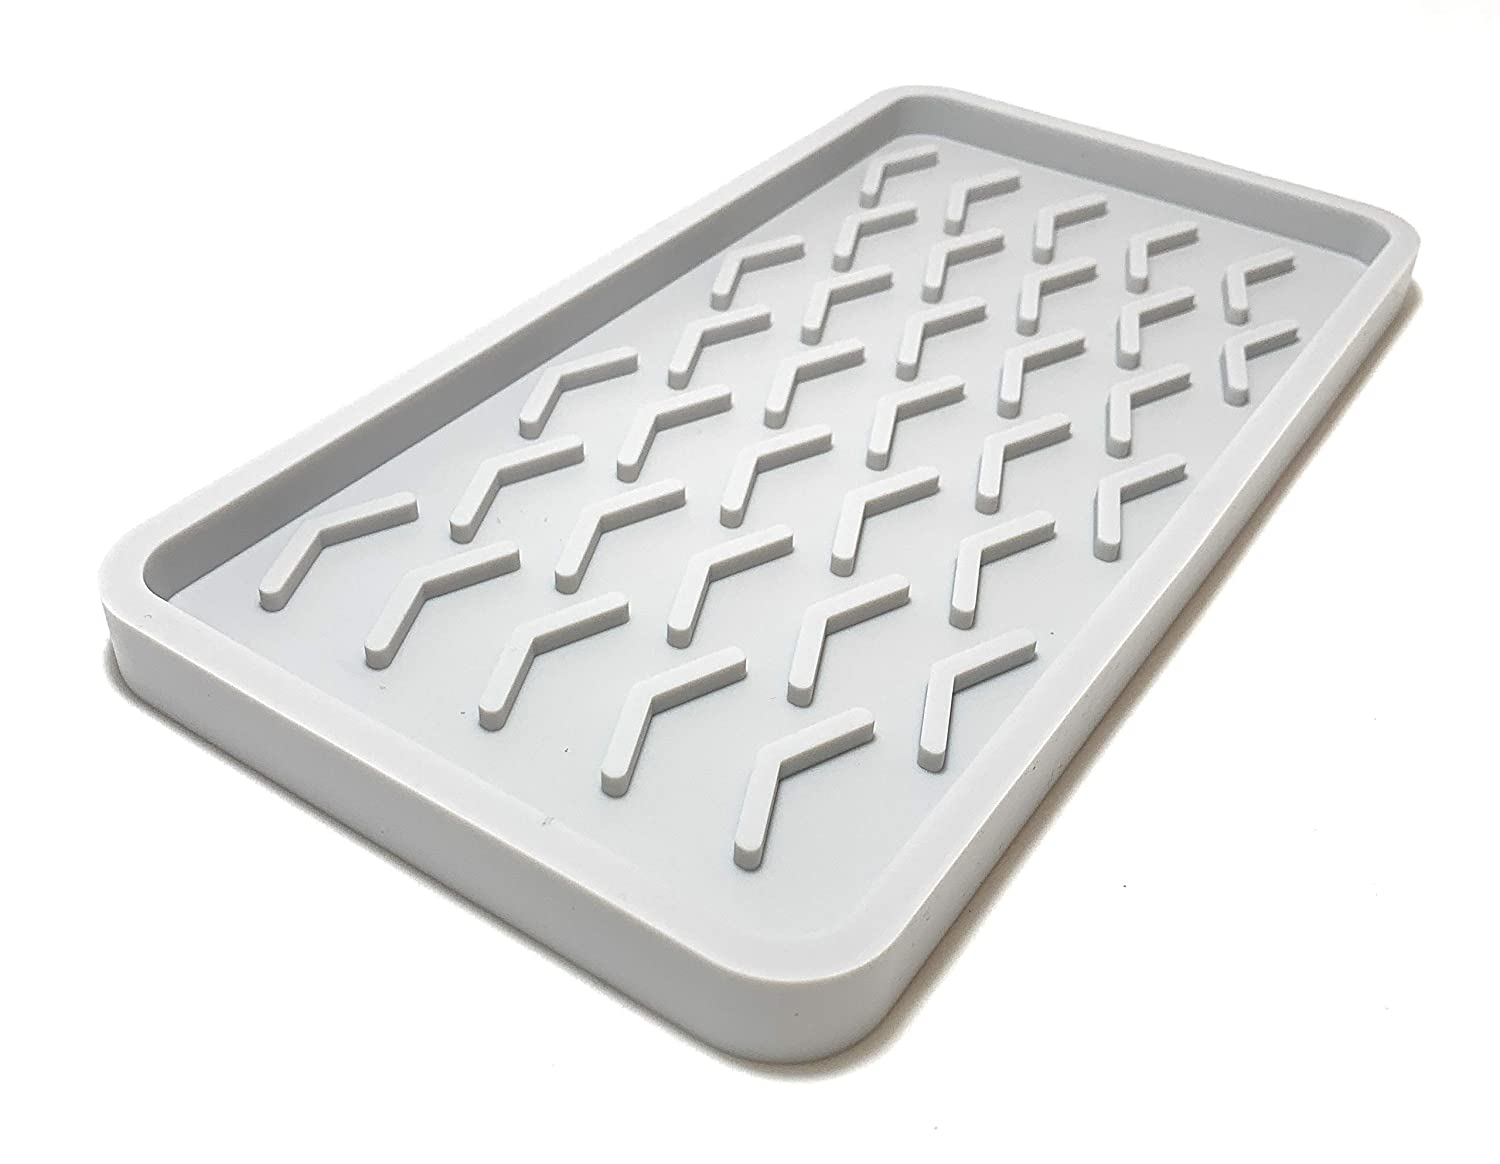 Silicone Kitchen Sink Organizer Tray, 10 inches x 5.25 inches, 10.4 ounces (LIGHT GREY)